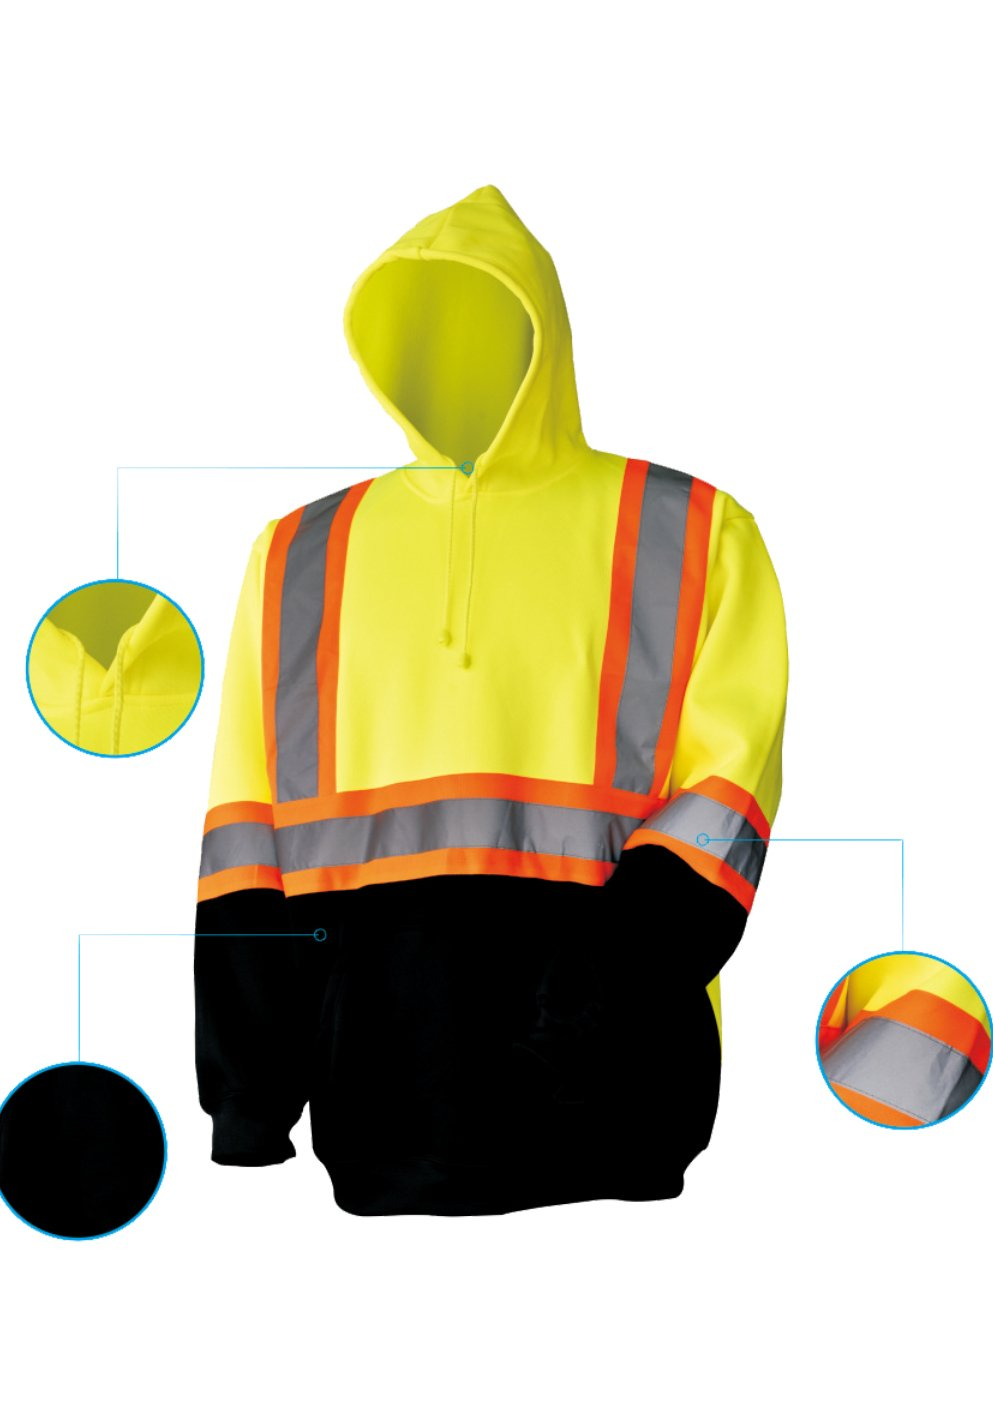 L&M High Visibility ANSI Class 3 Reflective Hooded Sweatshirt Safety Work Jacket (XL, Lime Pull)